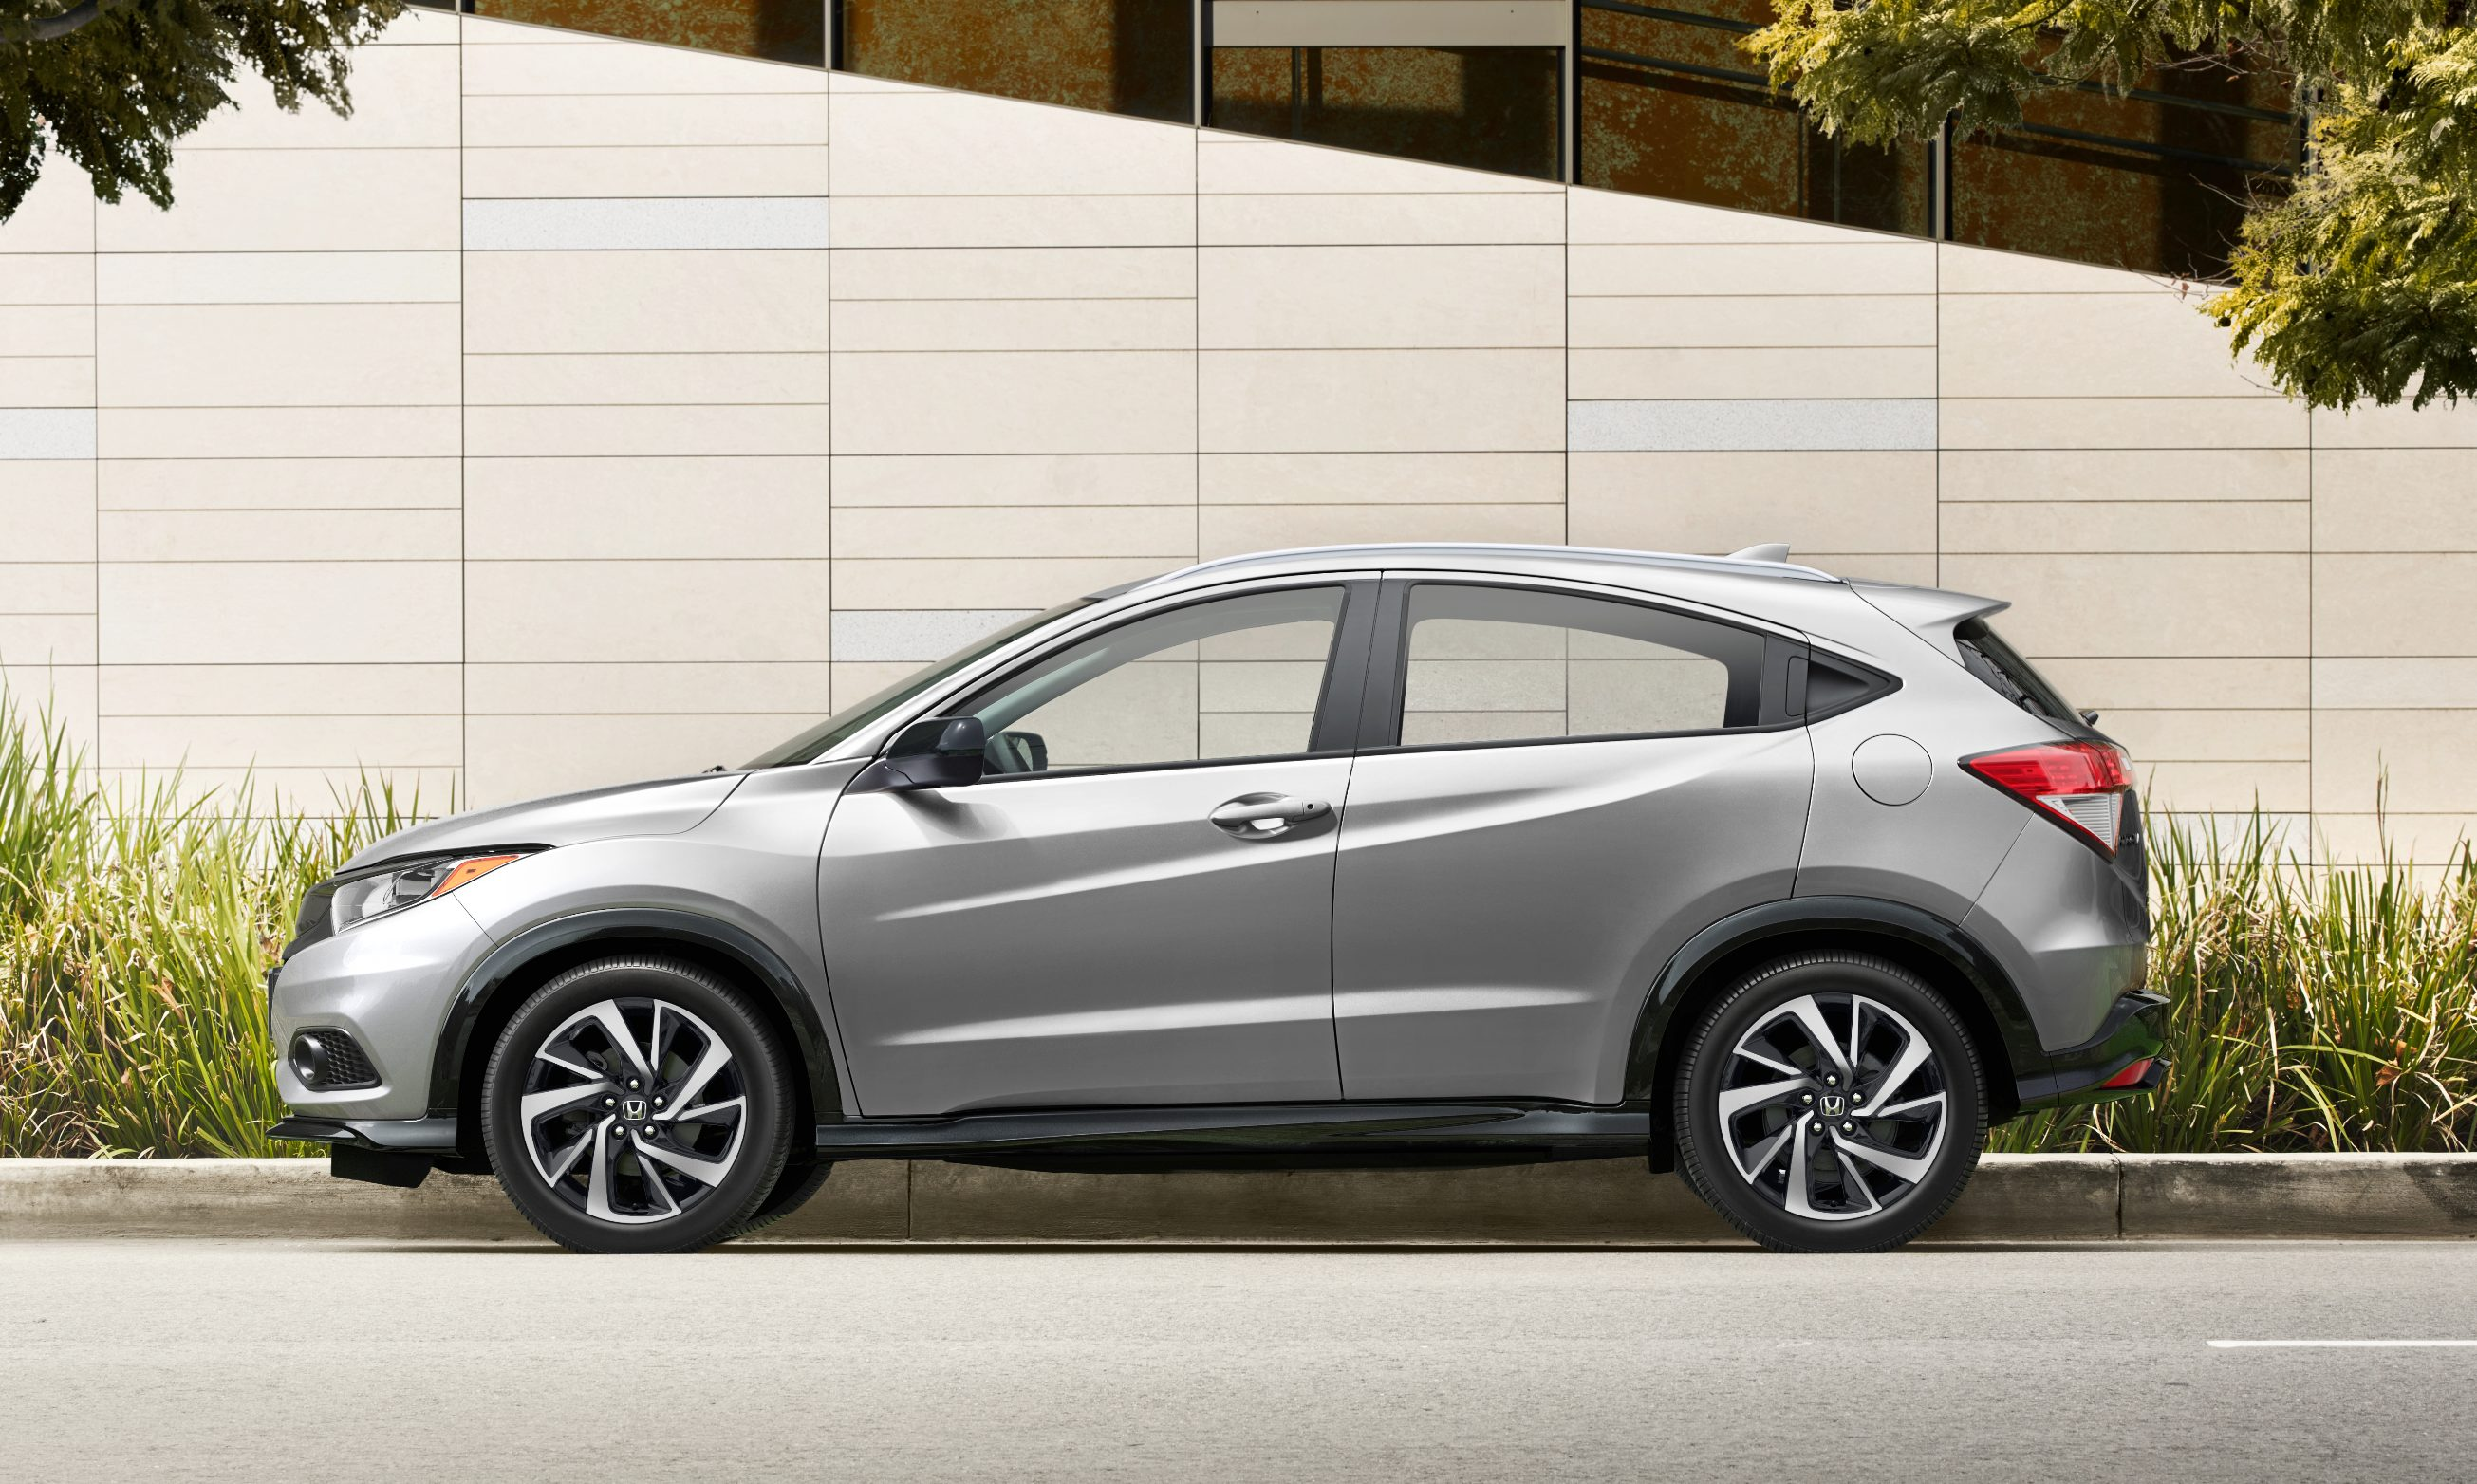 2019 honda hr-v pricing announced  loses manual gearbox